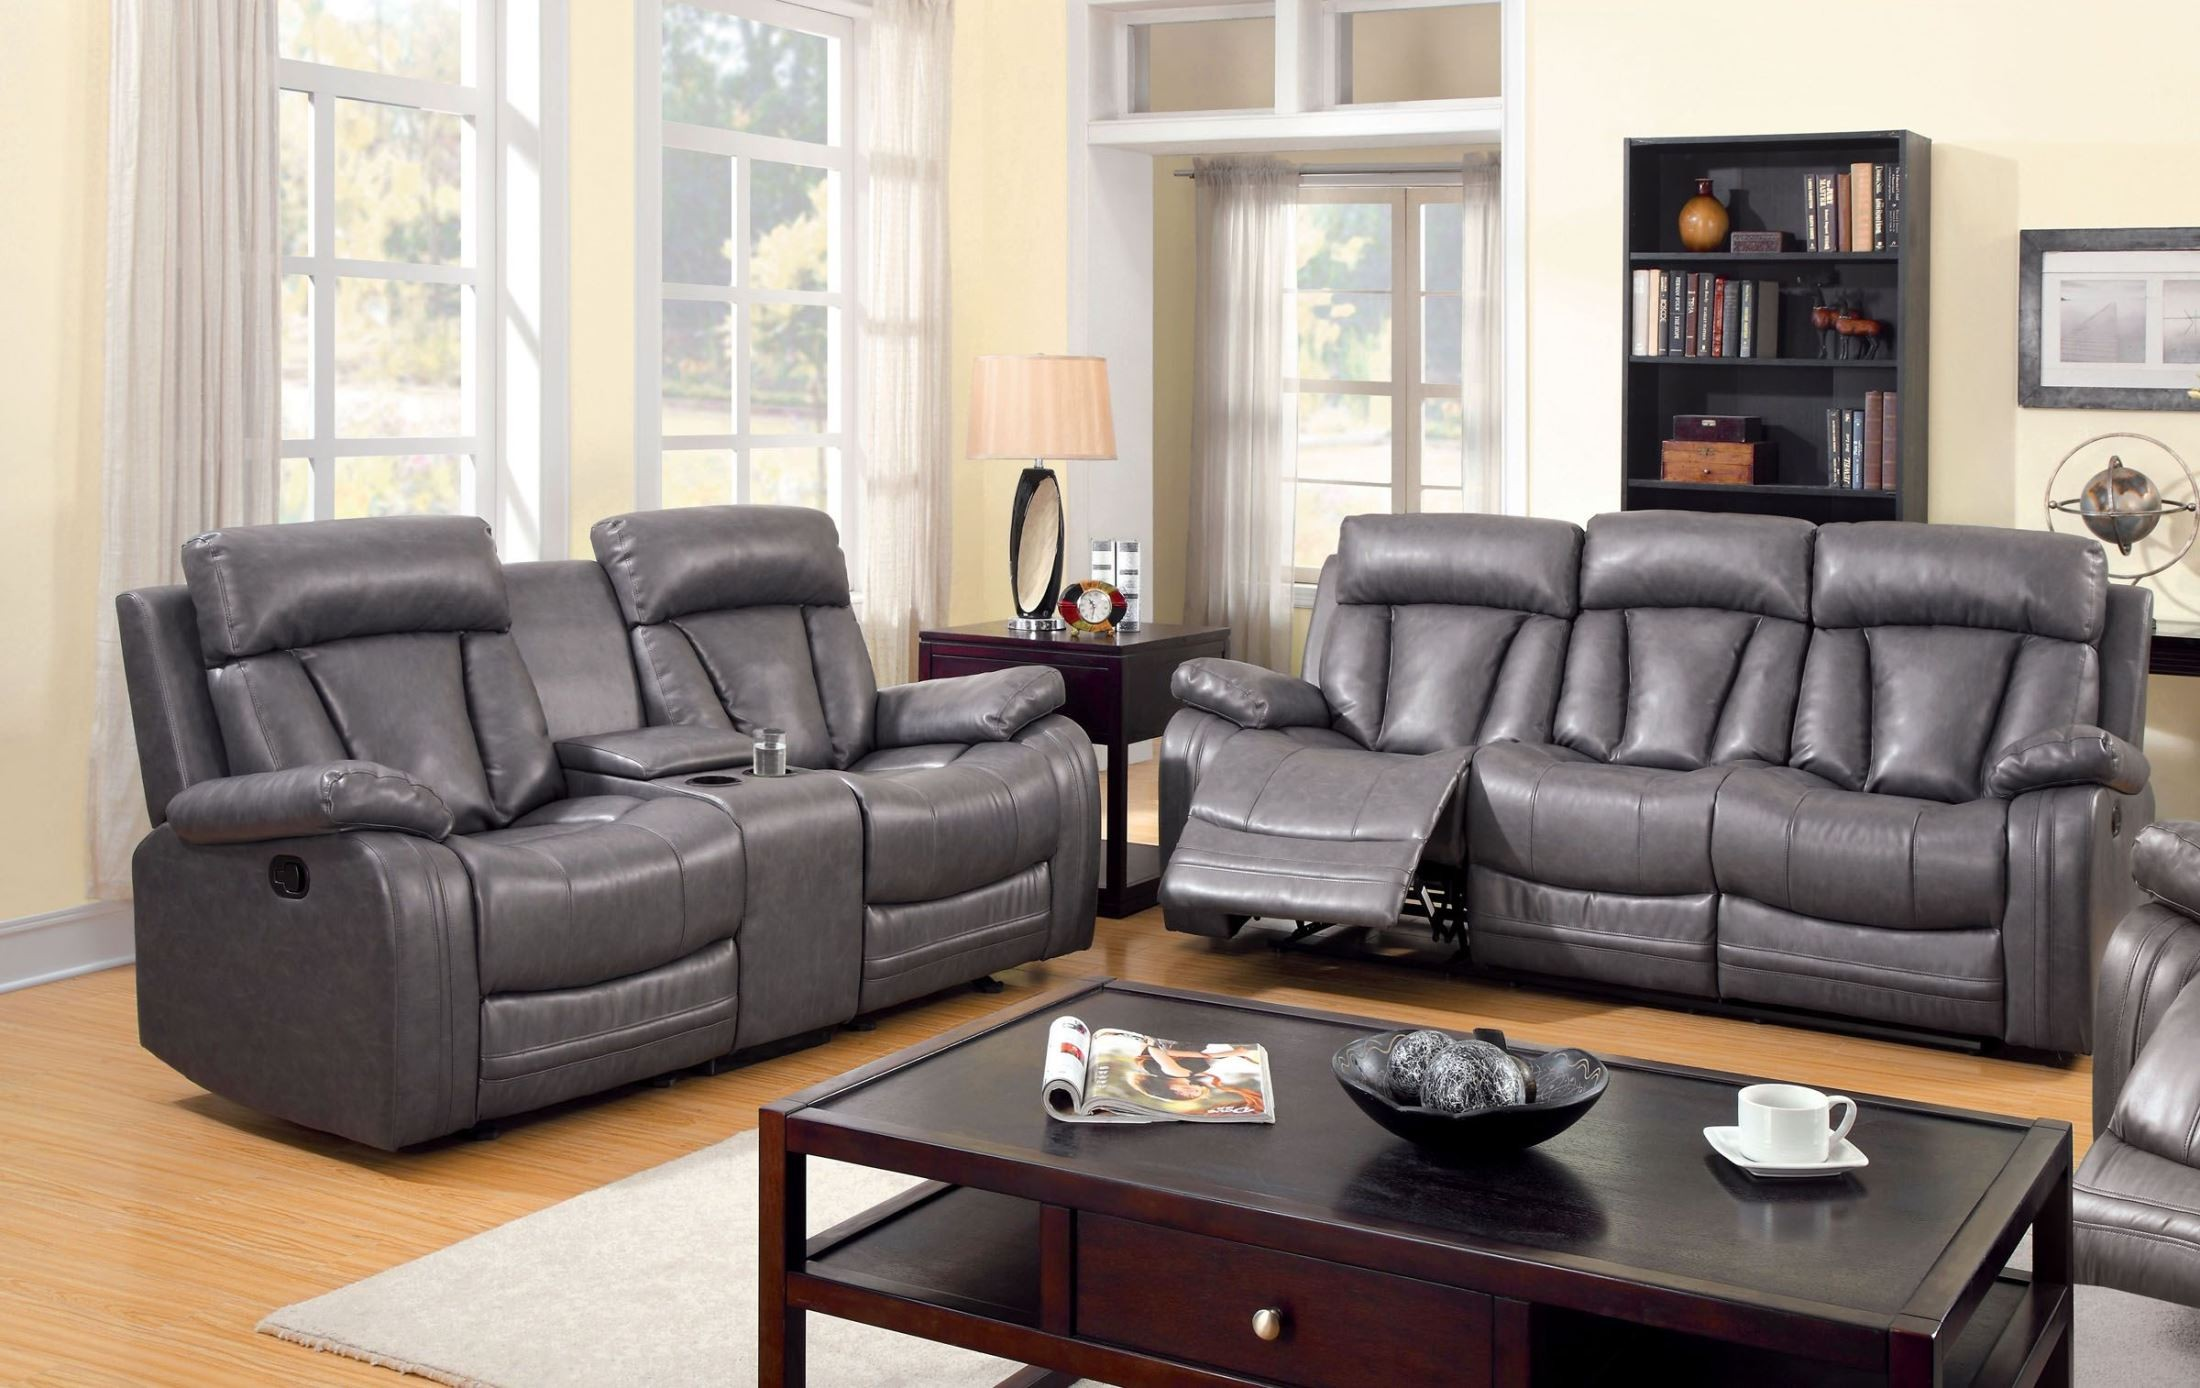 Guilford gray bonded leather reclining living room set for Cheap reclining living room sets